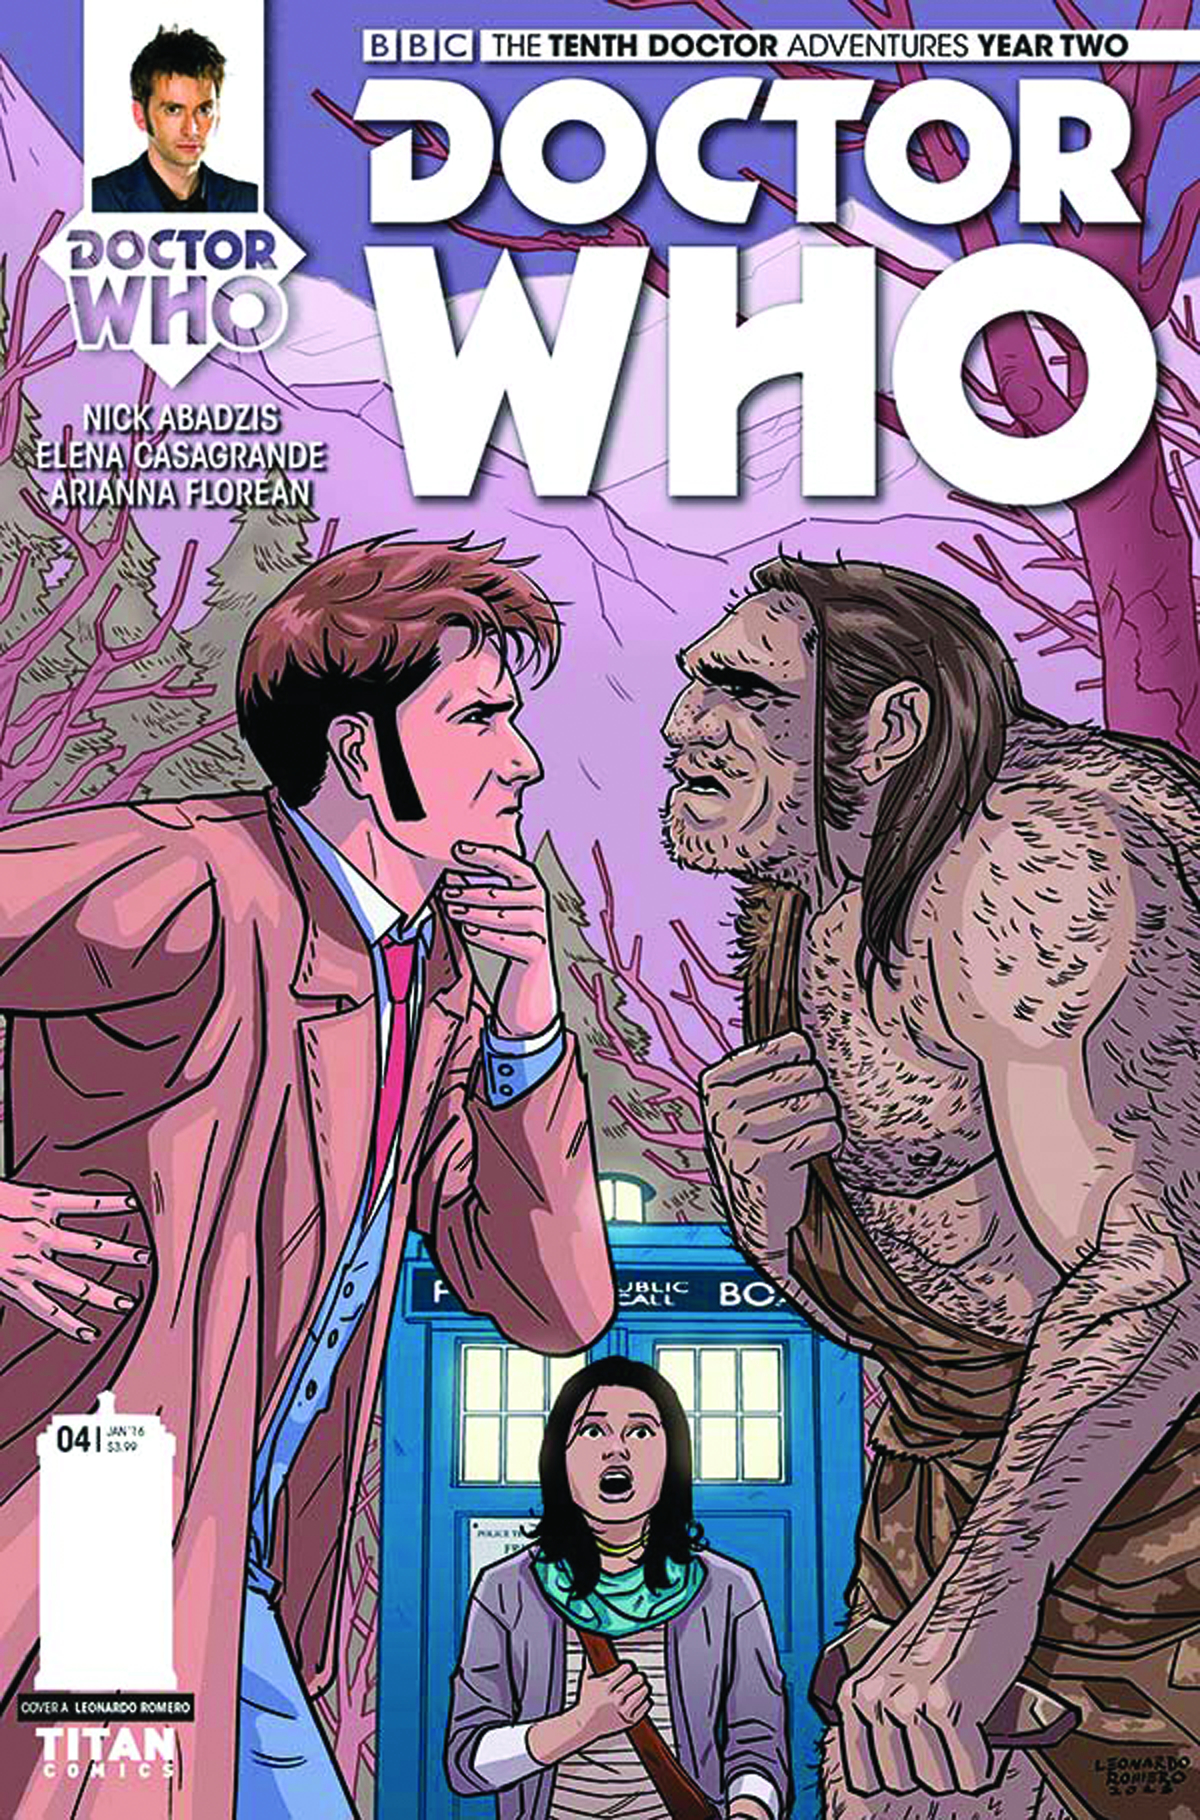 DOCTOR WHO 10TH YEAR TWO #4 REG ROMERO